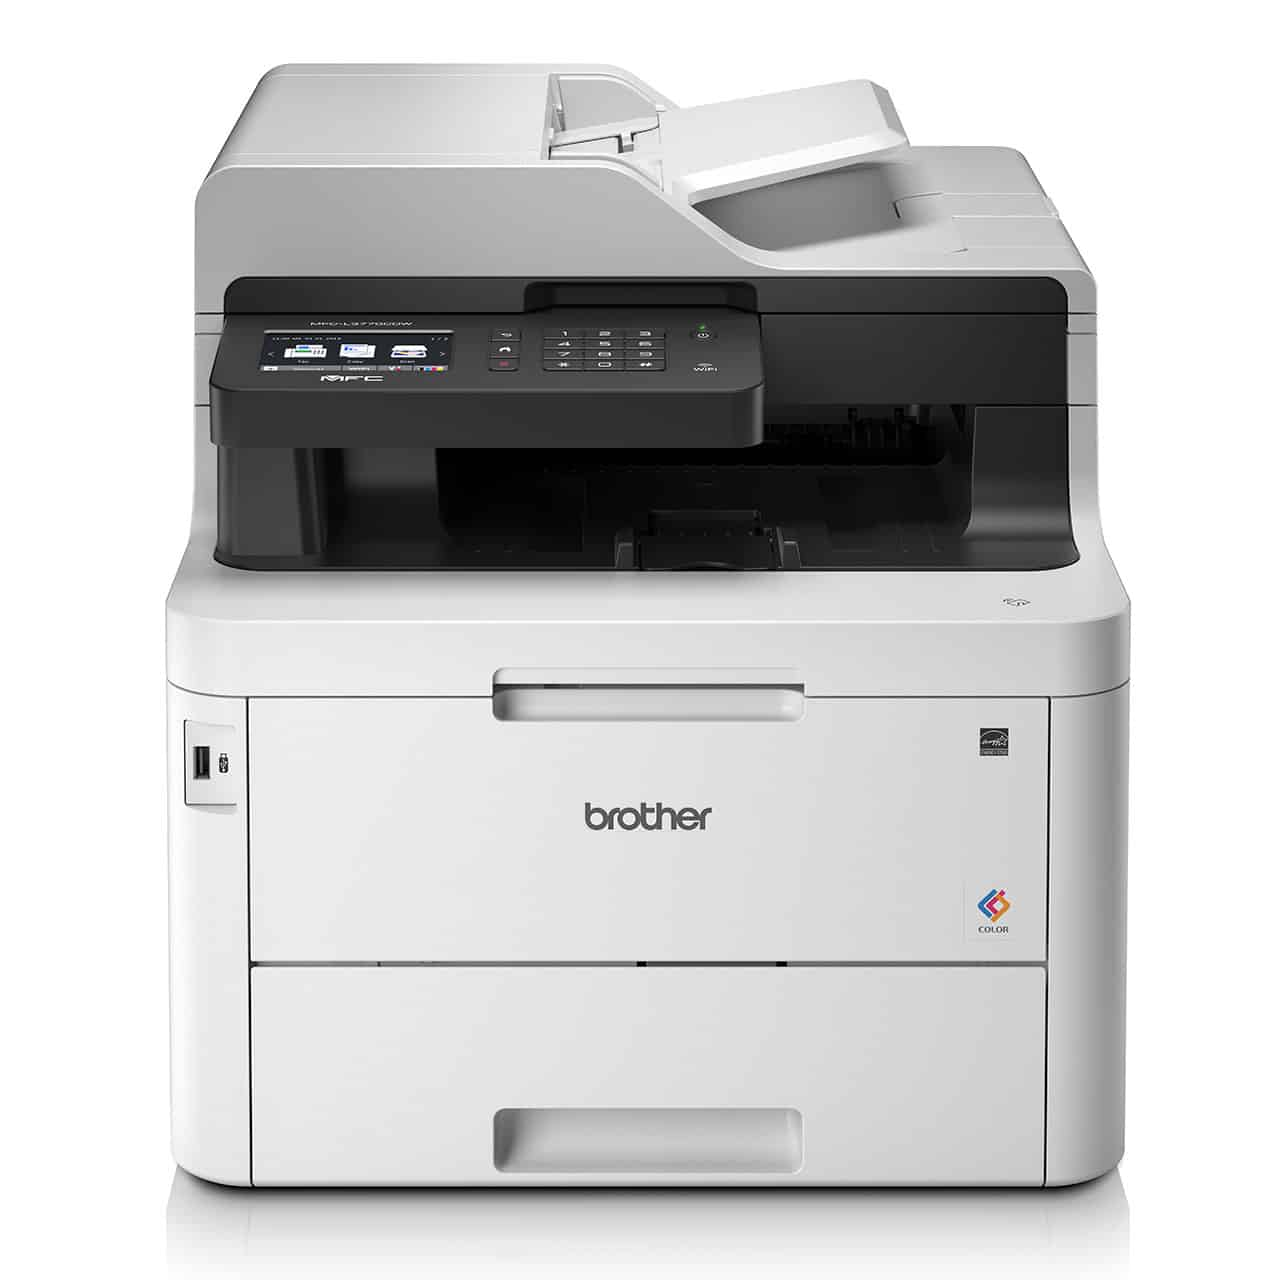 Brother MFC-L 3770 A4 Colour Multifunction Printer